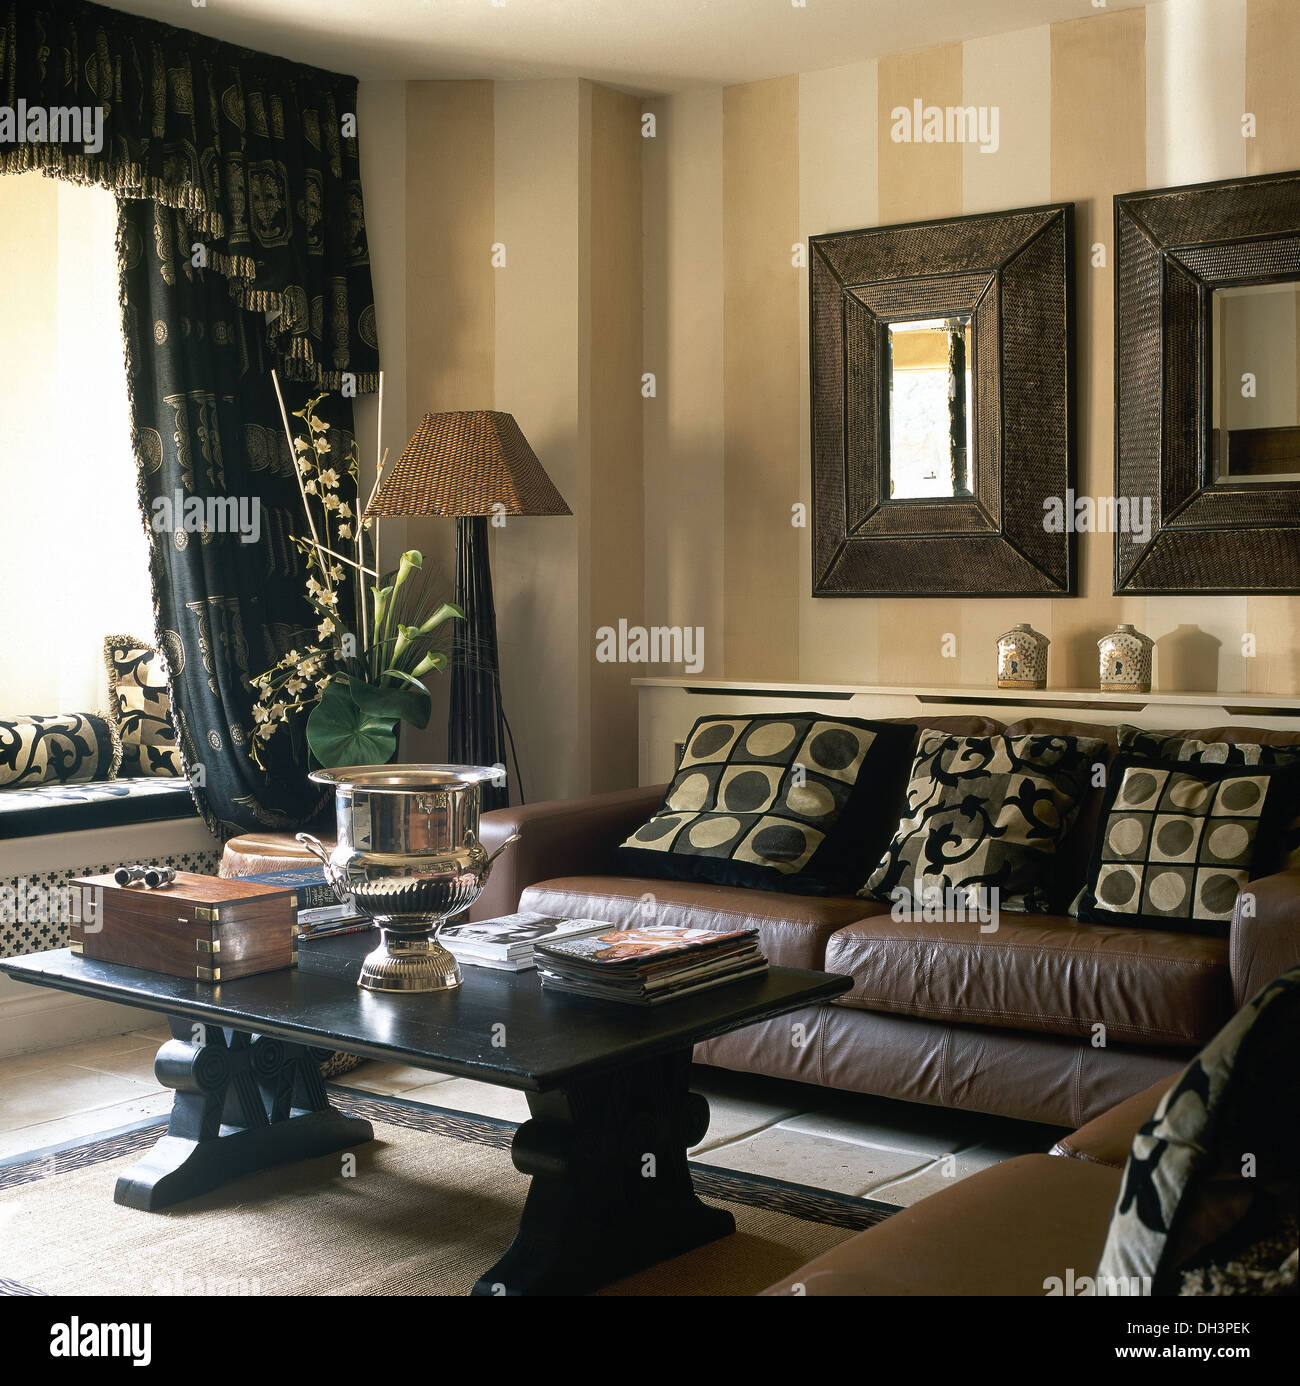 Merveilleux Heavy Wood Framed Mirrors Above Brown Leather Sofa With ...